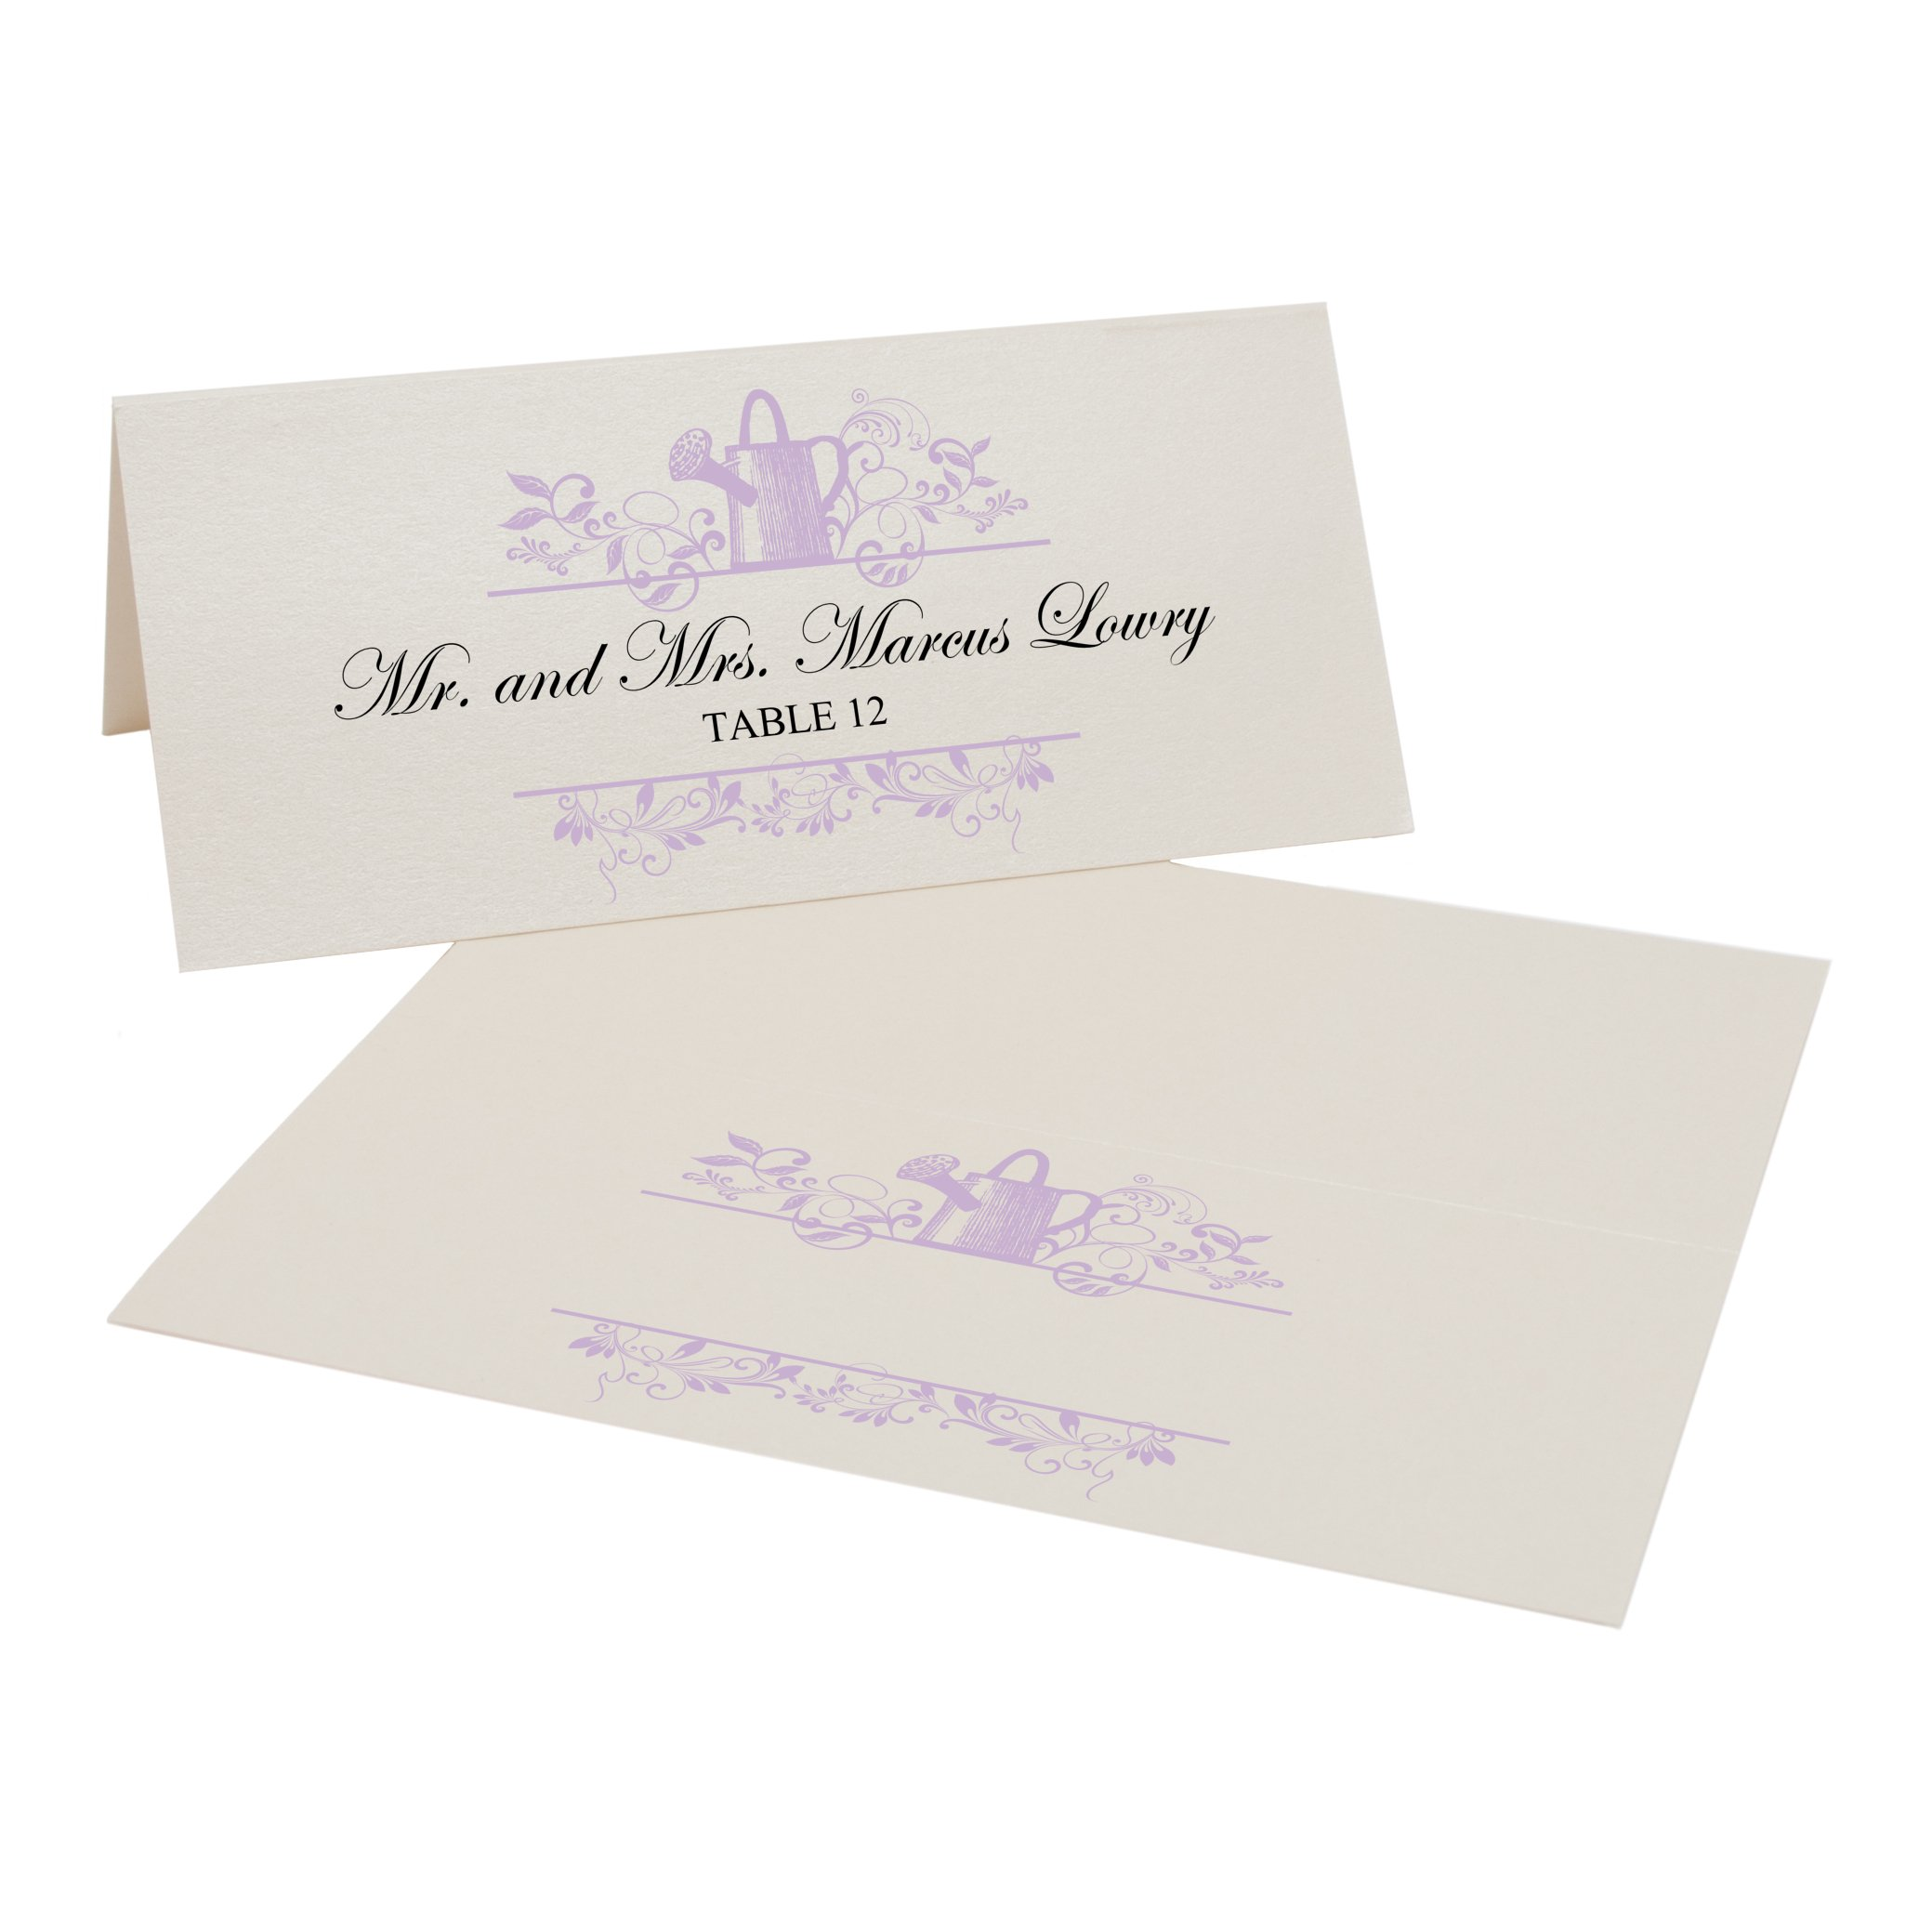 Vintage Garden Watering Can Easy Print Place Cards, Champagne, Lavender, Set of 450 (113 Sheets) by Documents and Designs